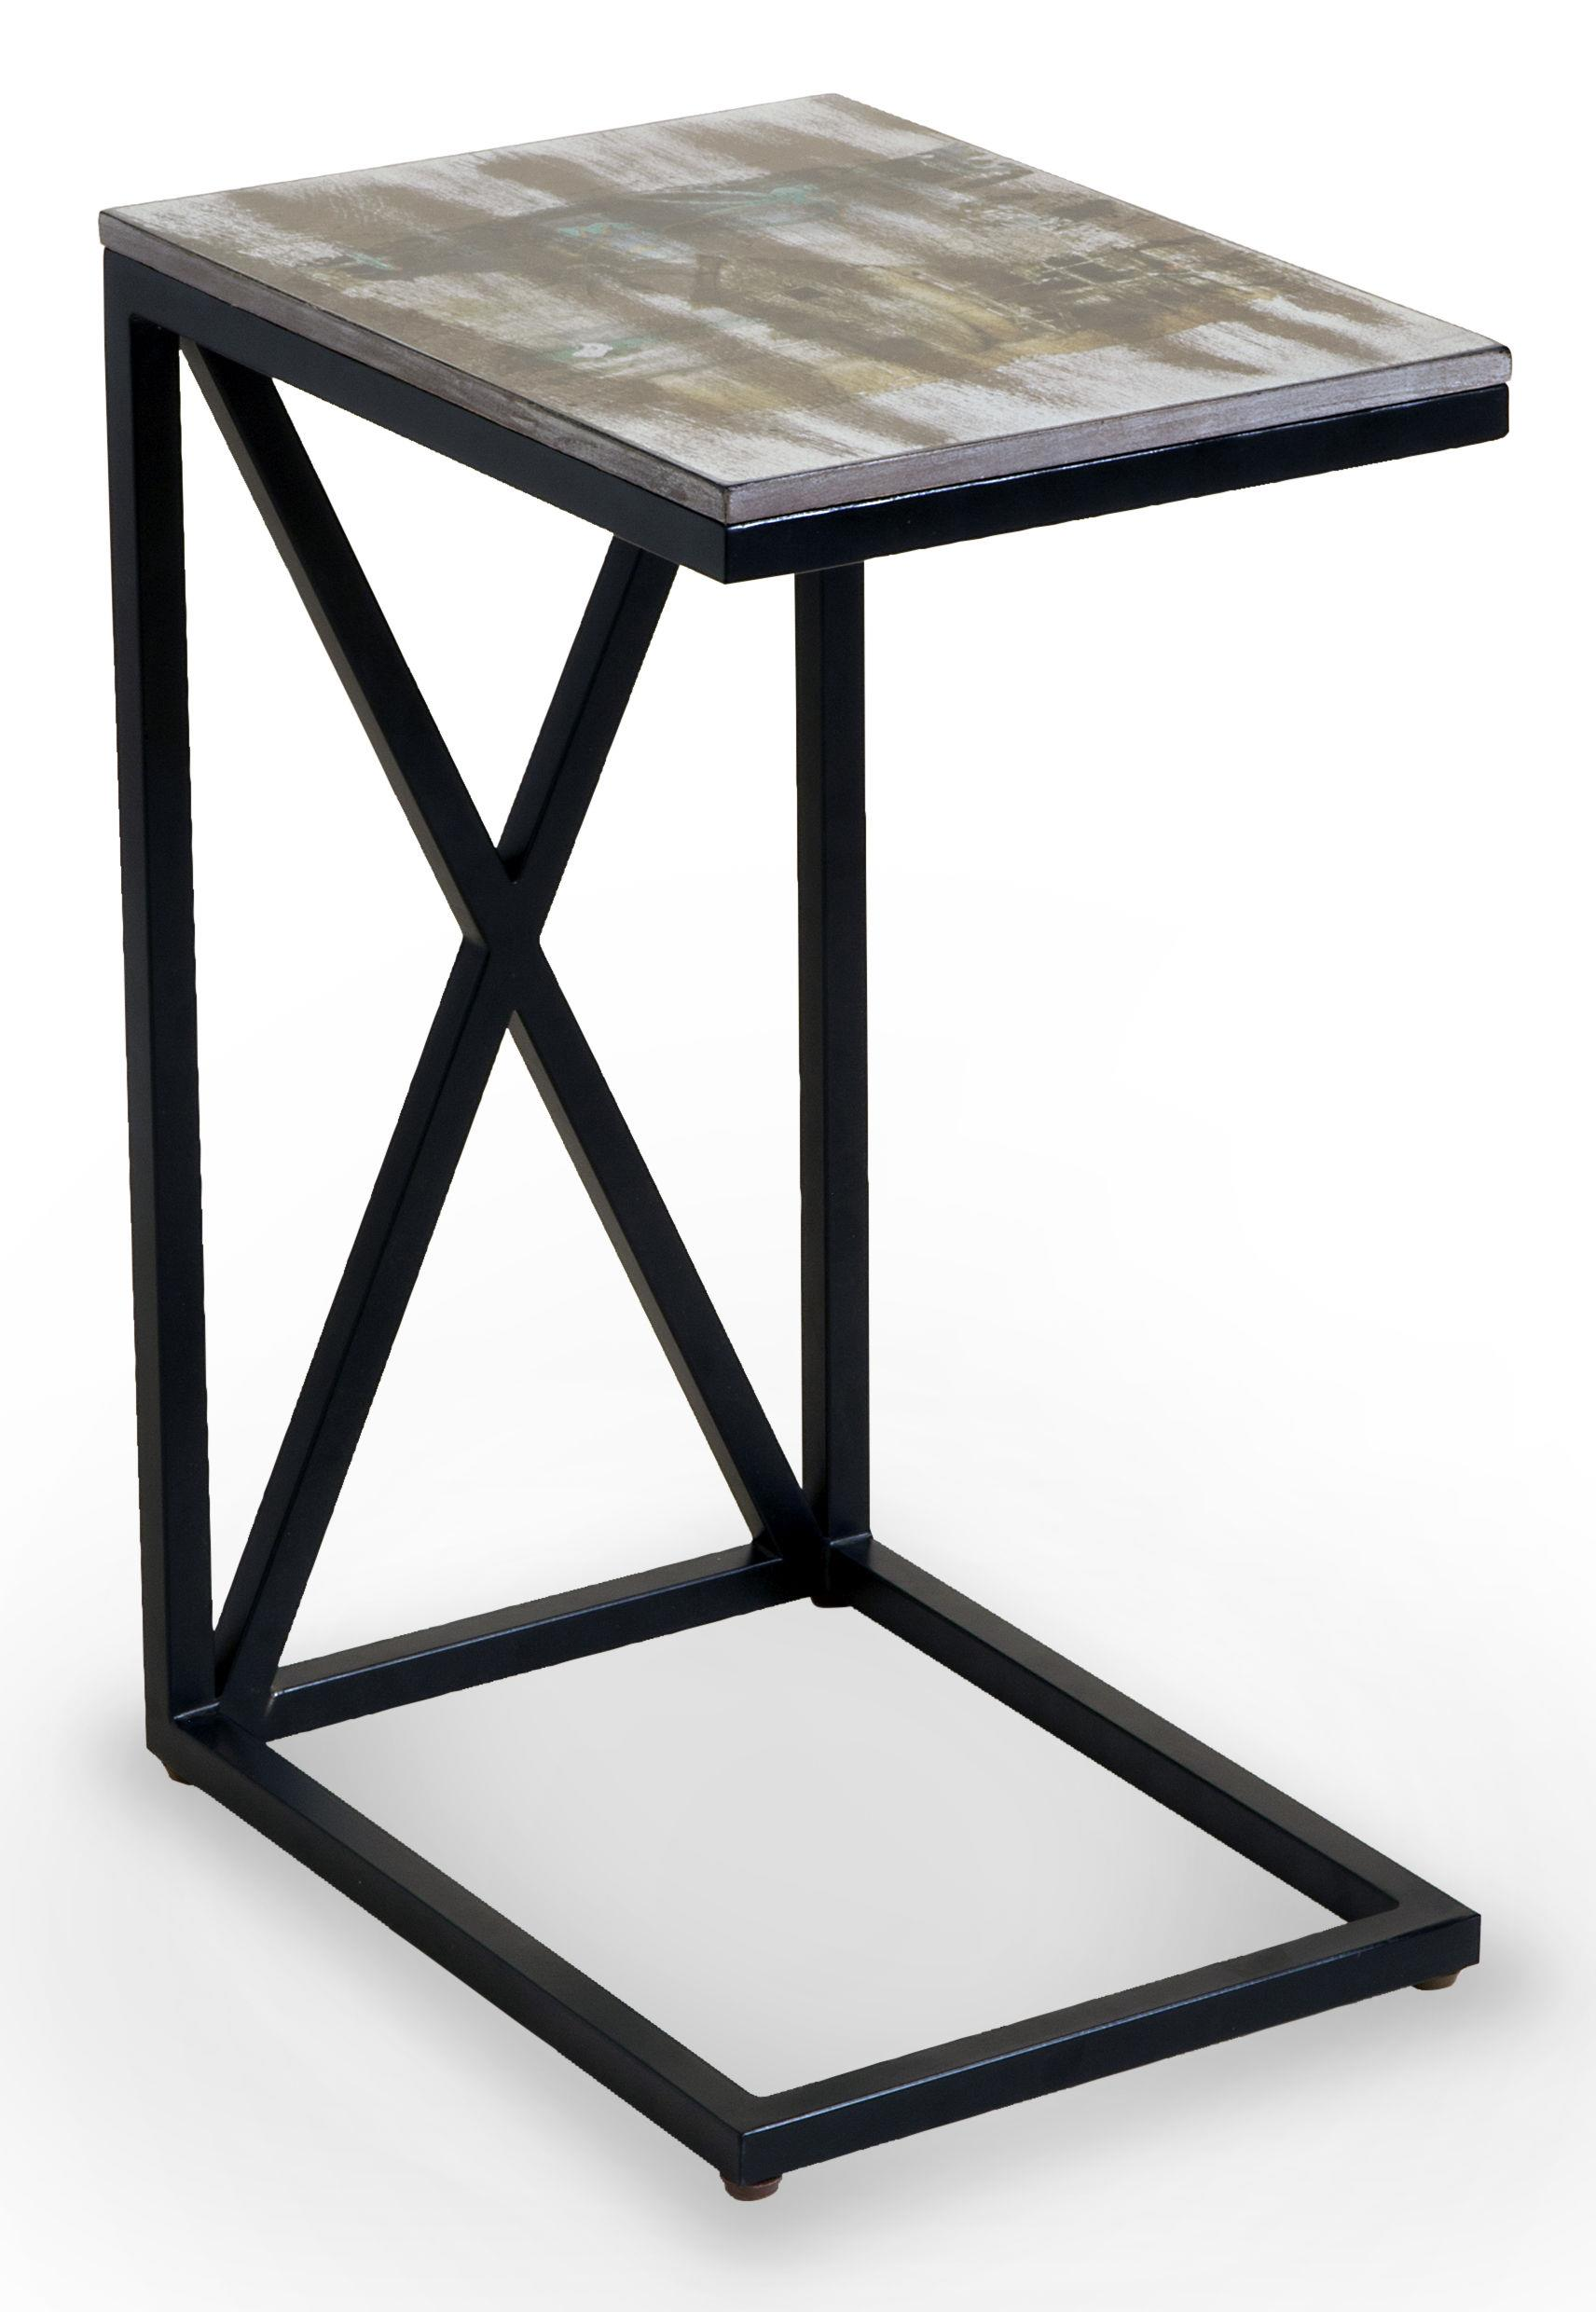 Stein World Accent Tables High Tide Accent Table - Item Number: 13311